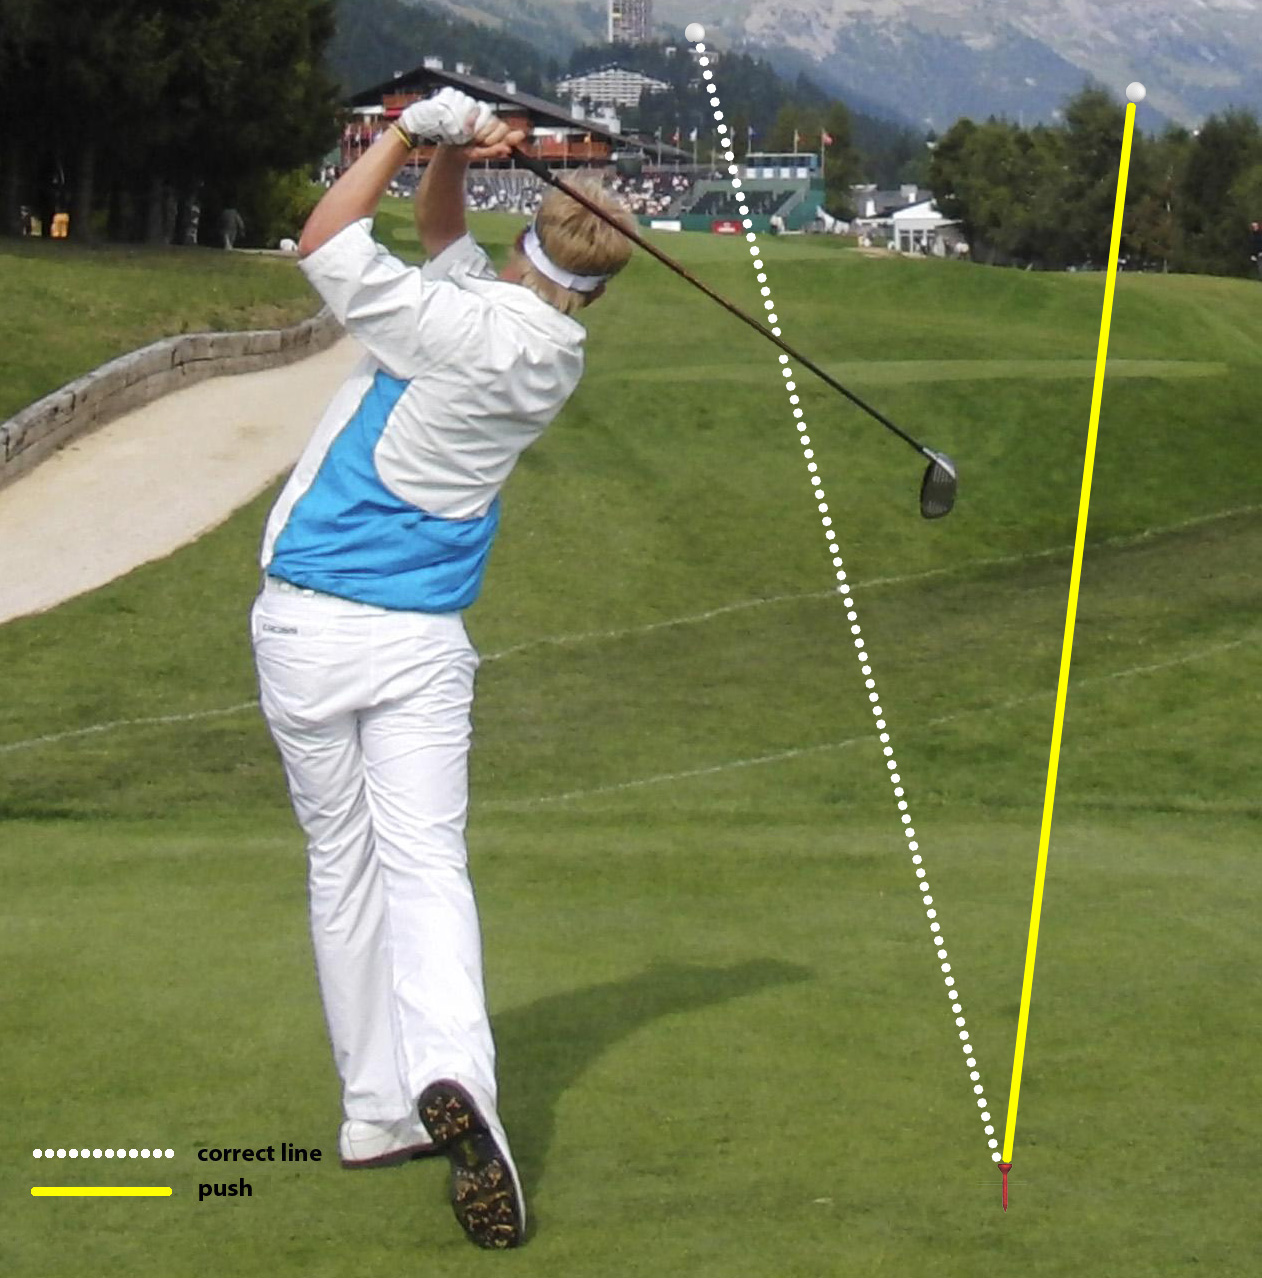 Fig.1 - The ball flight on a push shot is generally good, you just need to straighten it up